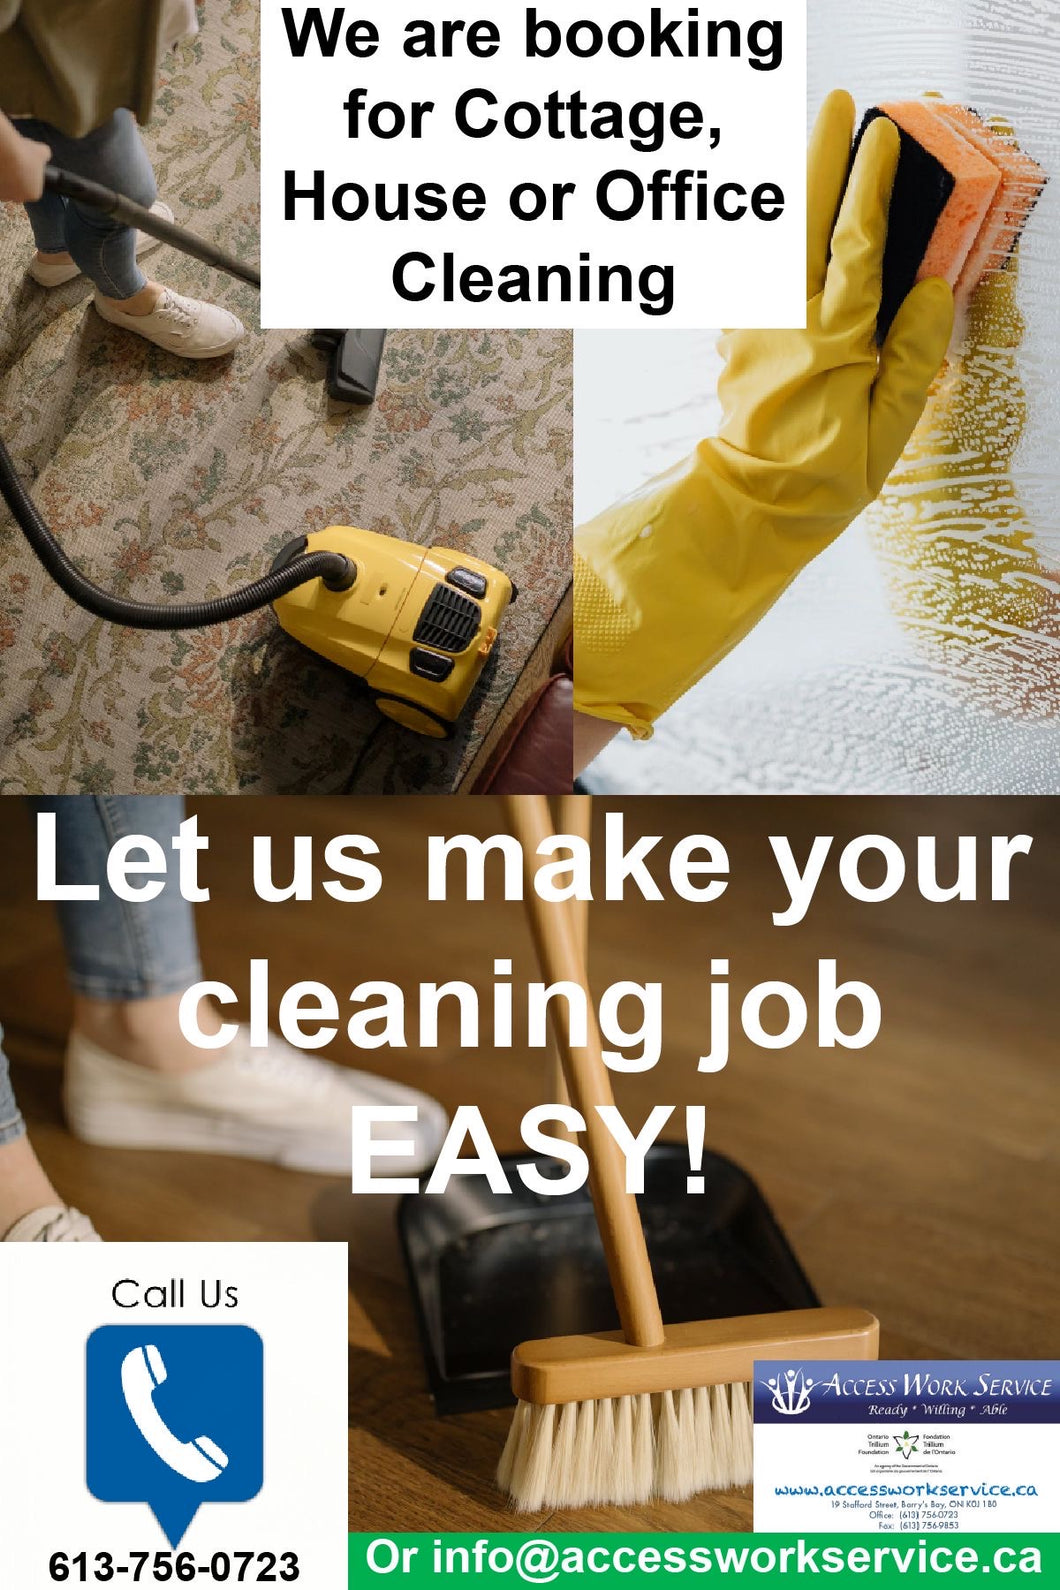 Vacuum, cleaning a surface, sweeping the floor with dust pan and broom